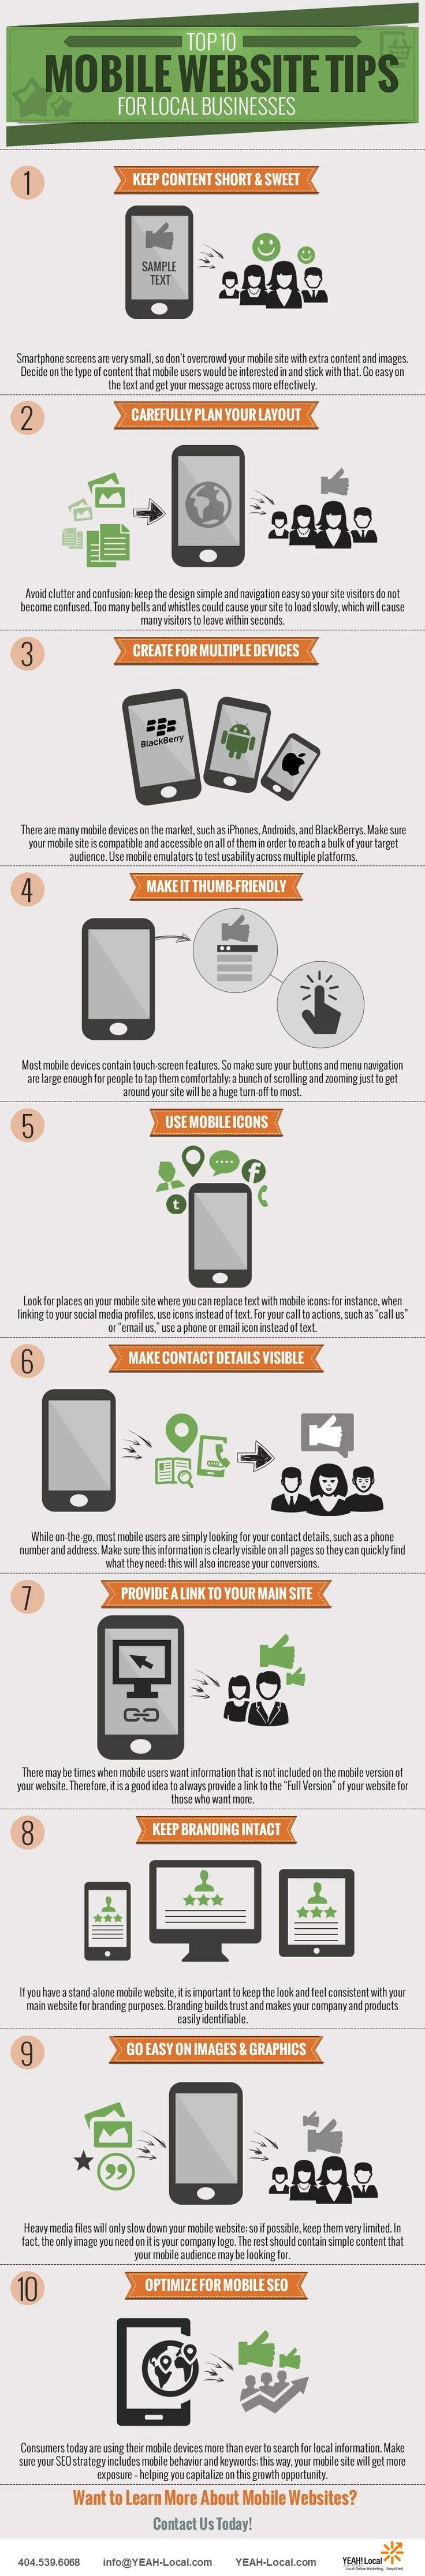 Are you looking for ways to improve the user experience of your mobile website? Steps to pass Google's mobile friendly test. The steps to mobile success in this infographic.